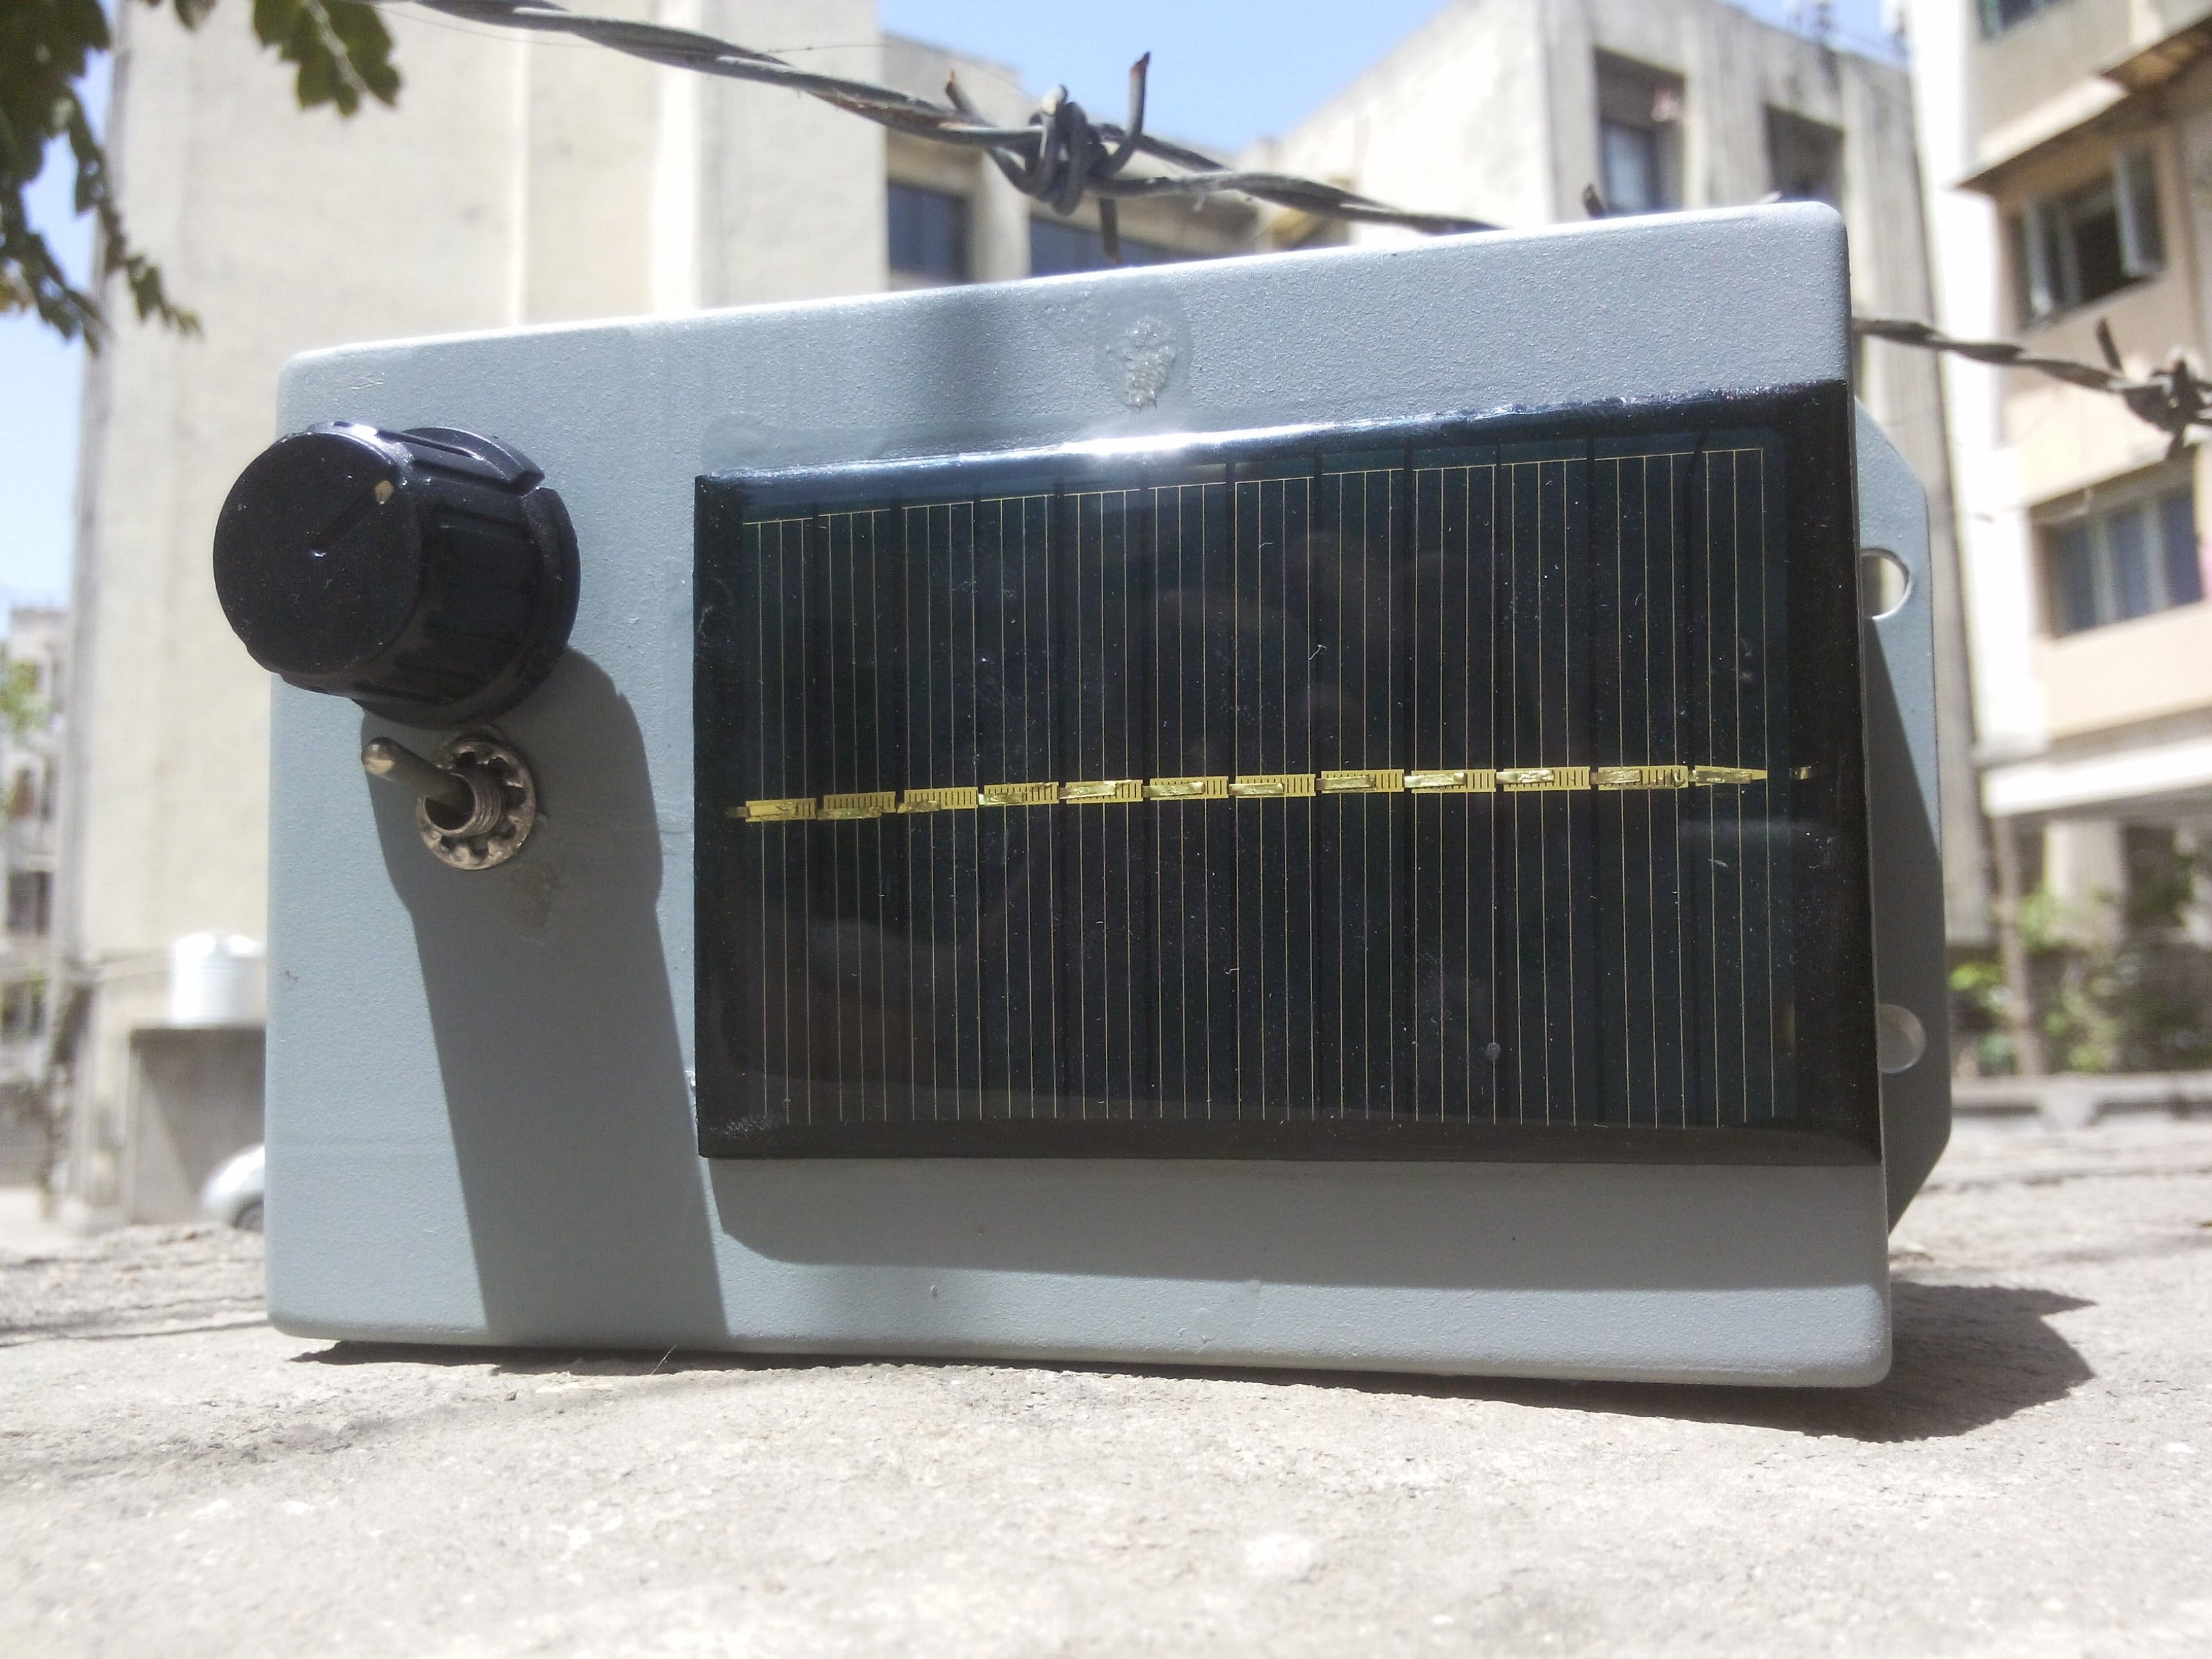 Tame the Beast: Solar Power Station for Arduino